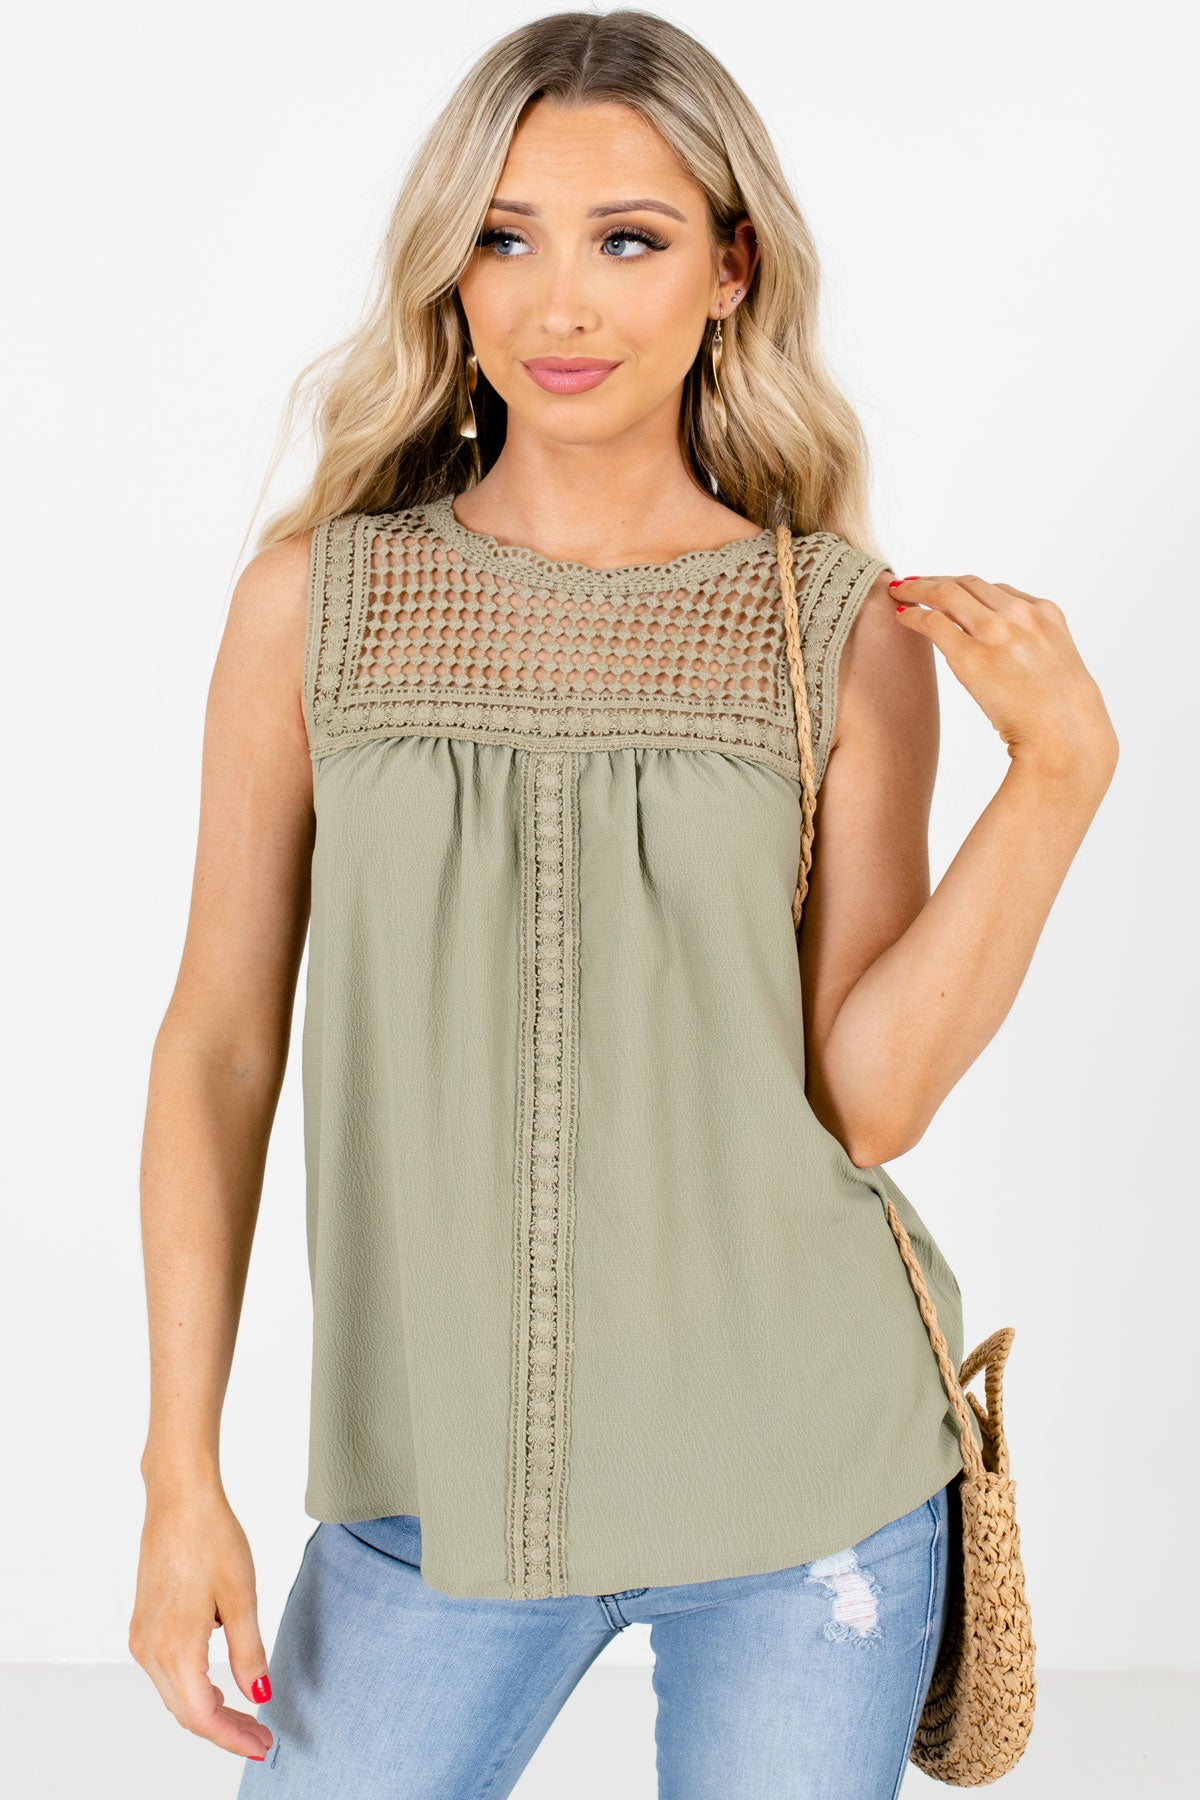 Olive Green Crochet Detailed Boutique Tank Tops for Women